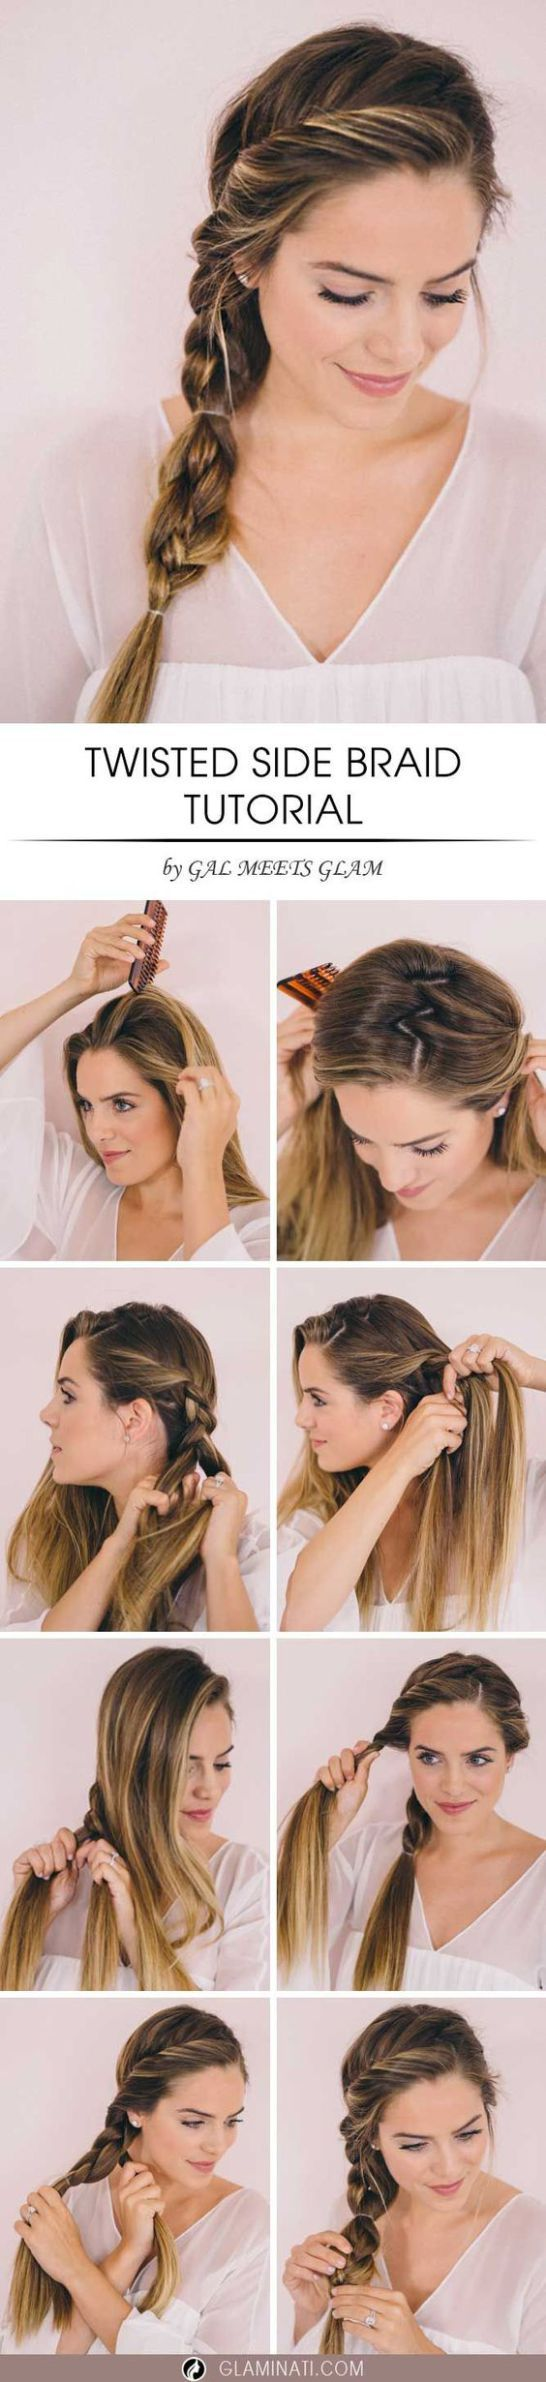 best haare images on pinterest cute hairstyles hairstyle ideas